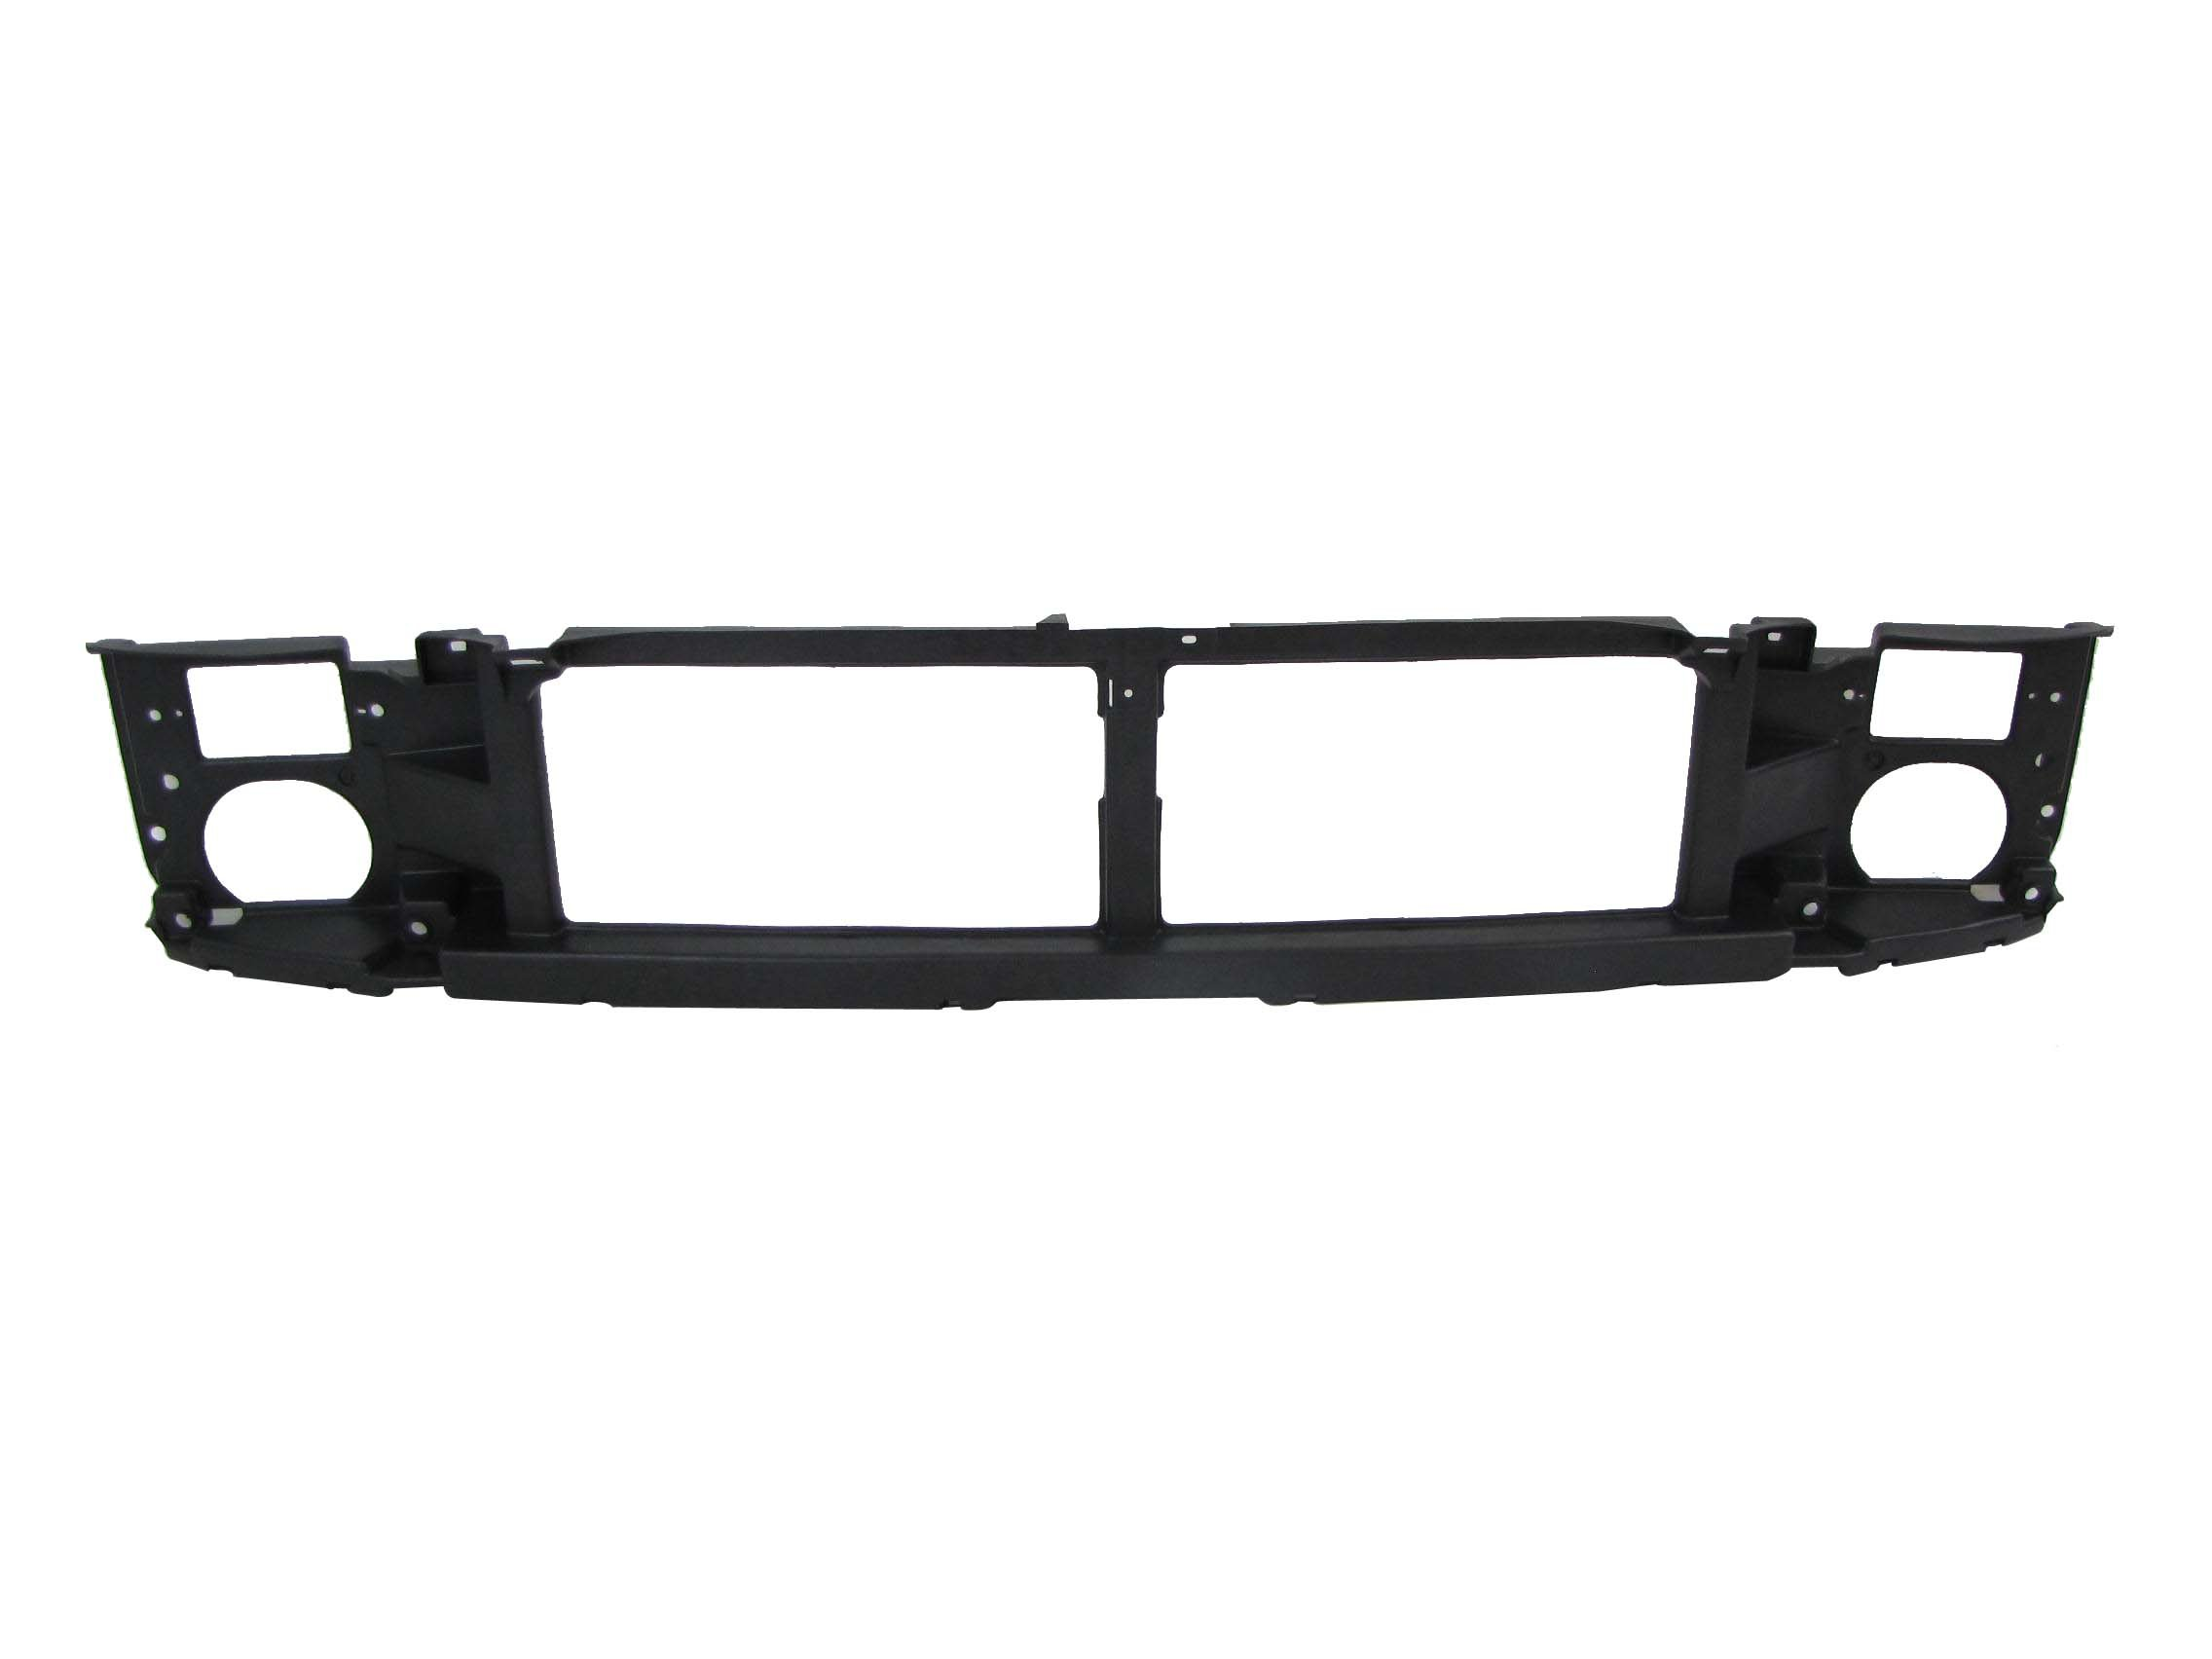 92-96 F150 F250ld Bronco 92-97 F250hd F350 Front Nose Header Mounting Panel FO1220113 by NEW AFTERMARKET PARTS